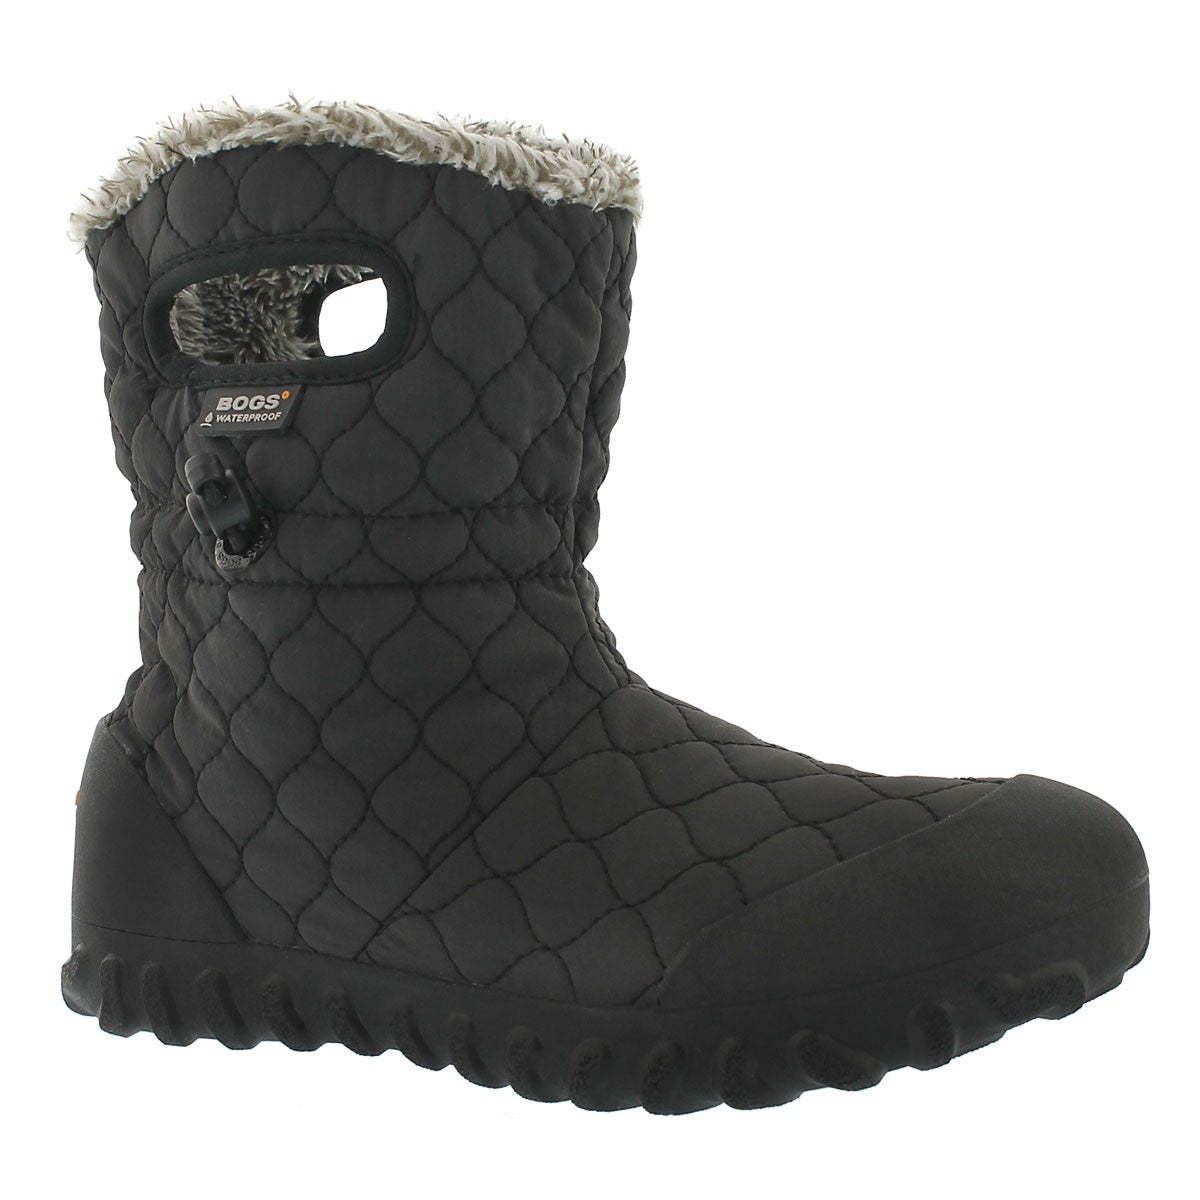 Women's B-MOC QUILTED PUFF black waterproof boots